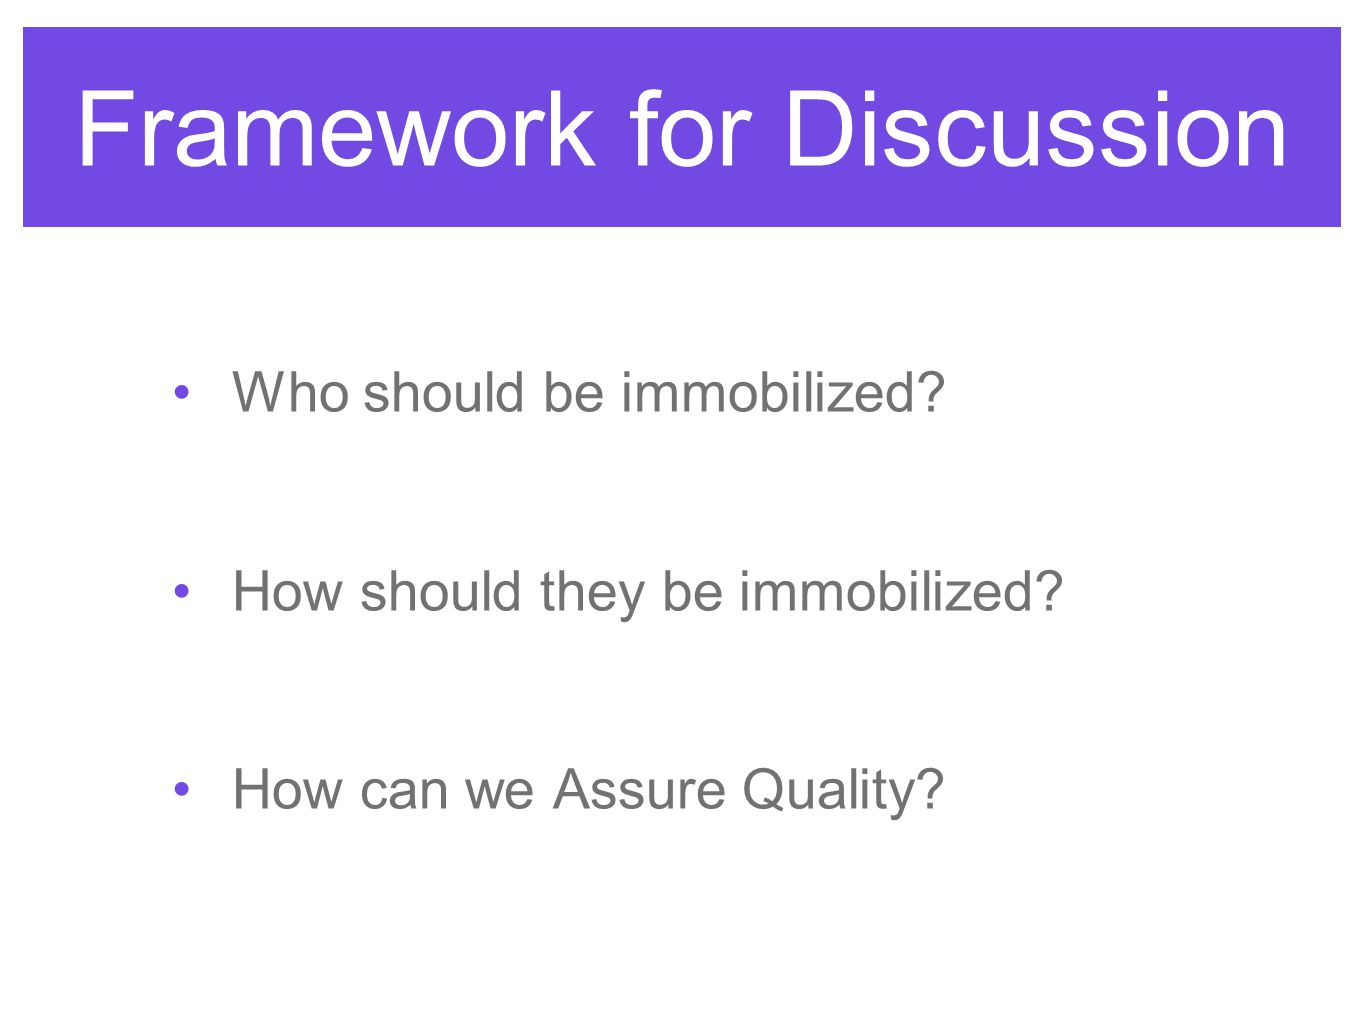 Framework for Discussion